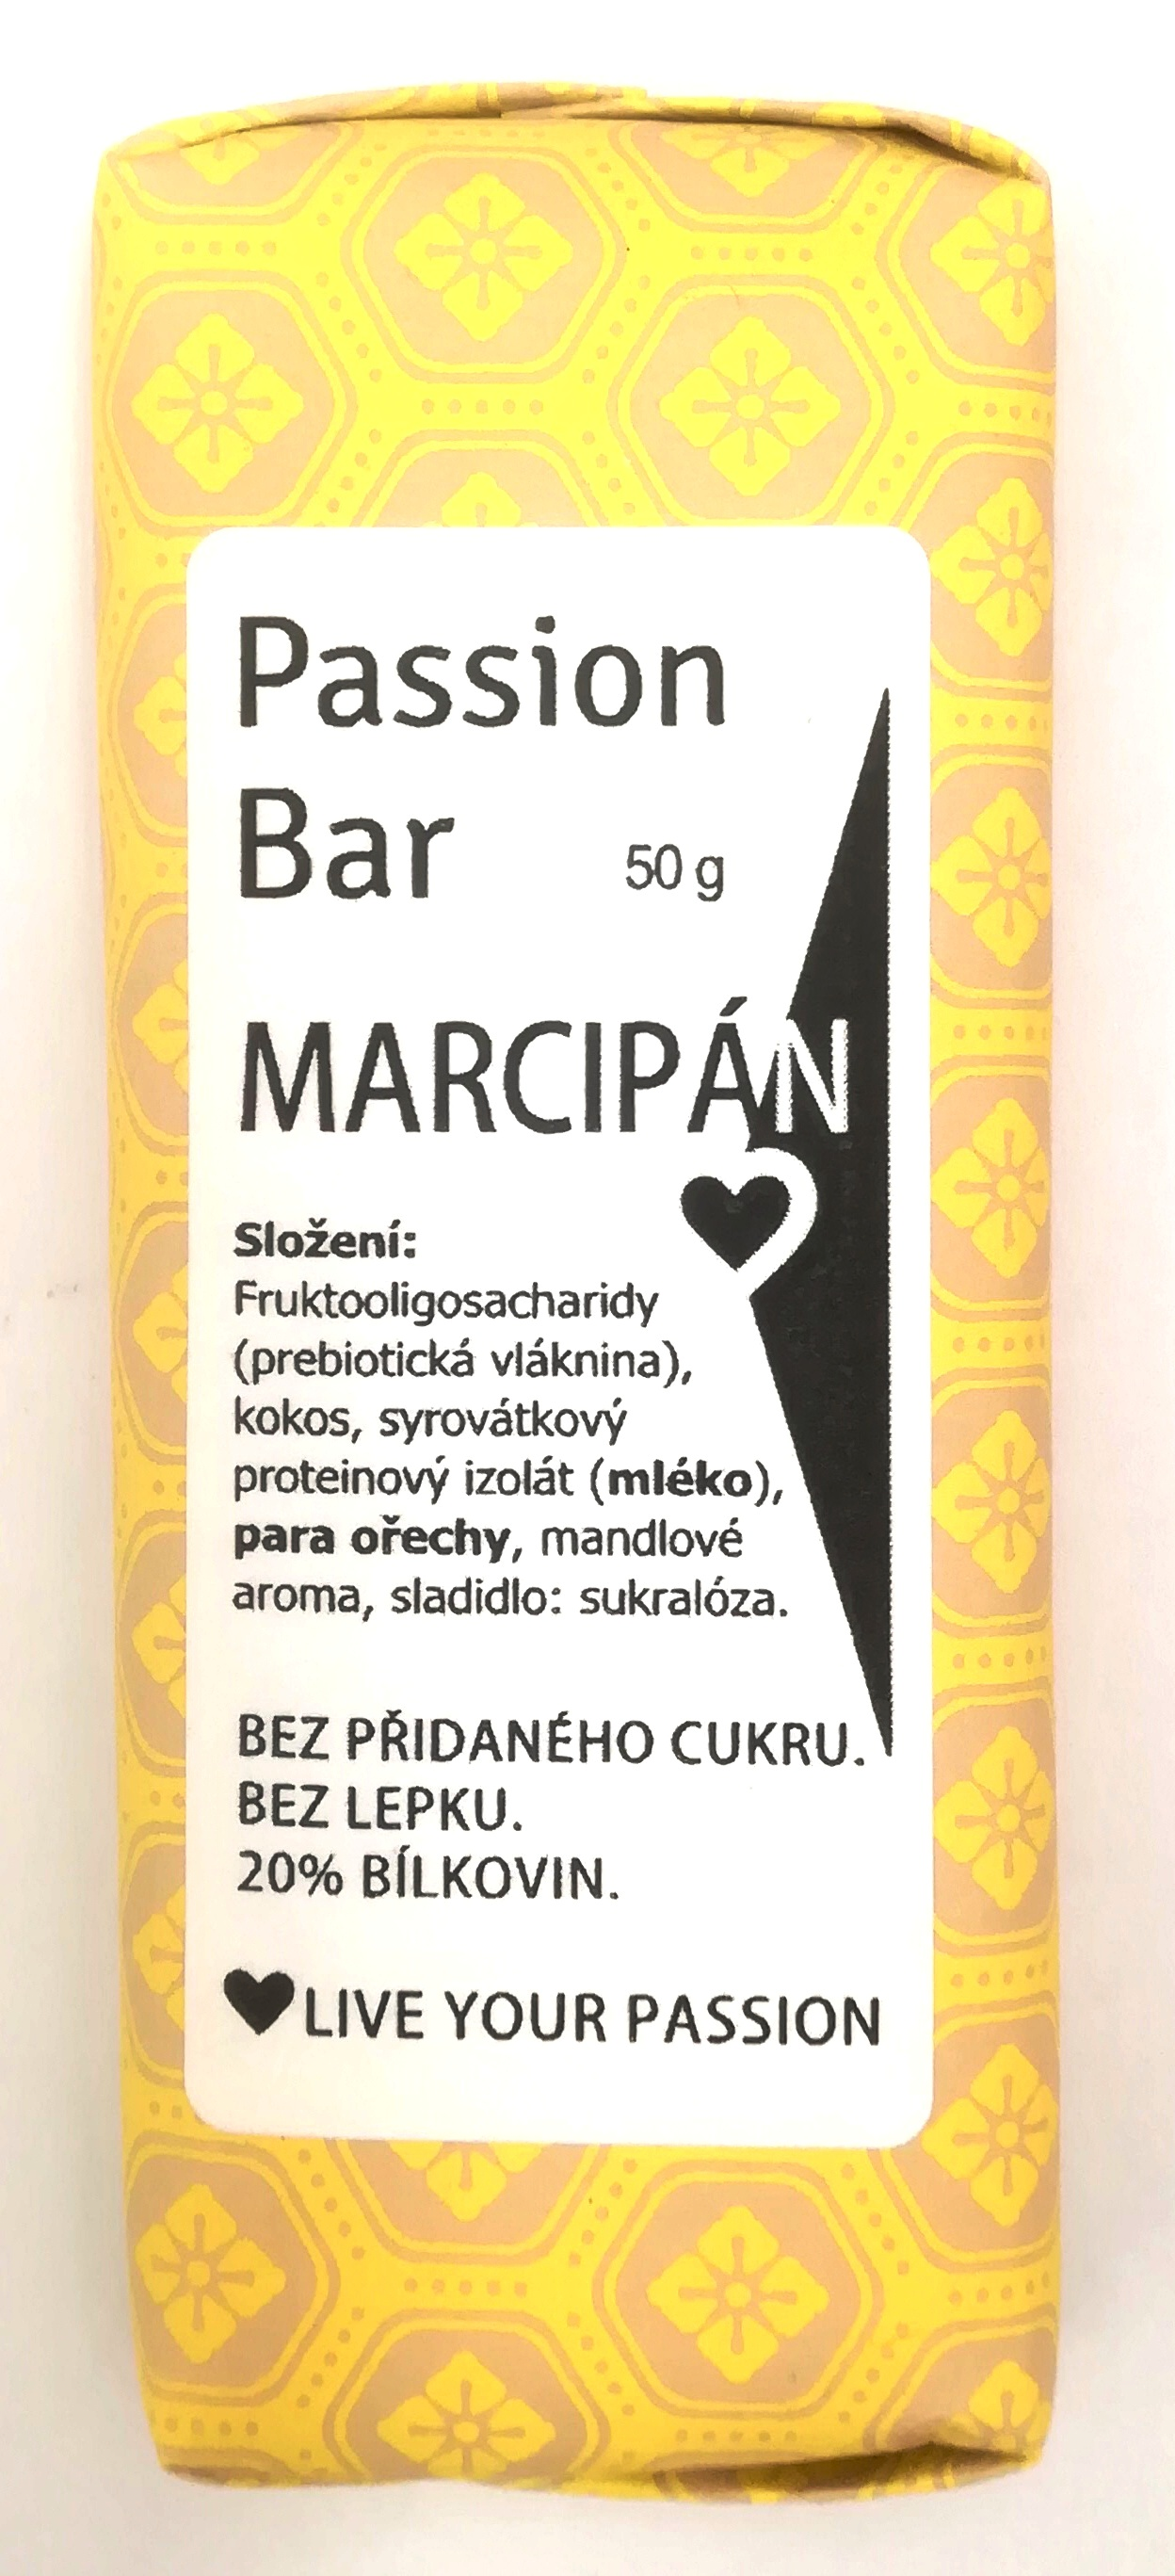 "low carb PASSION BAR - ""MARCIPÁN"" s proteinem 50g"